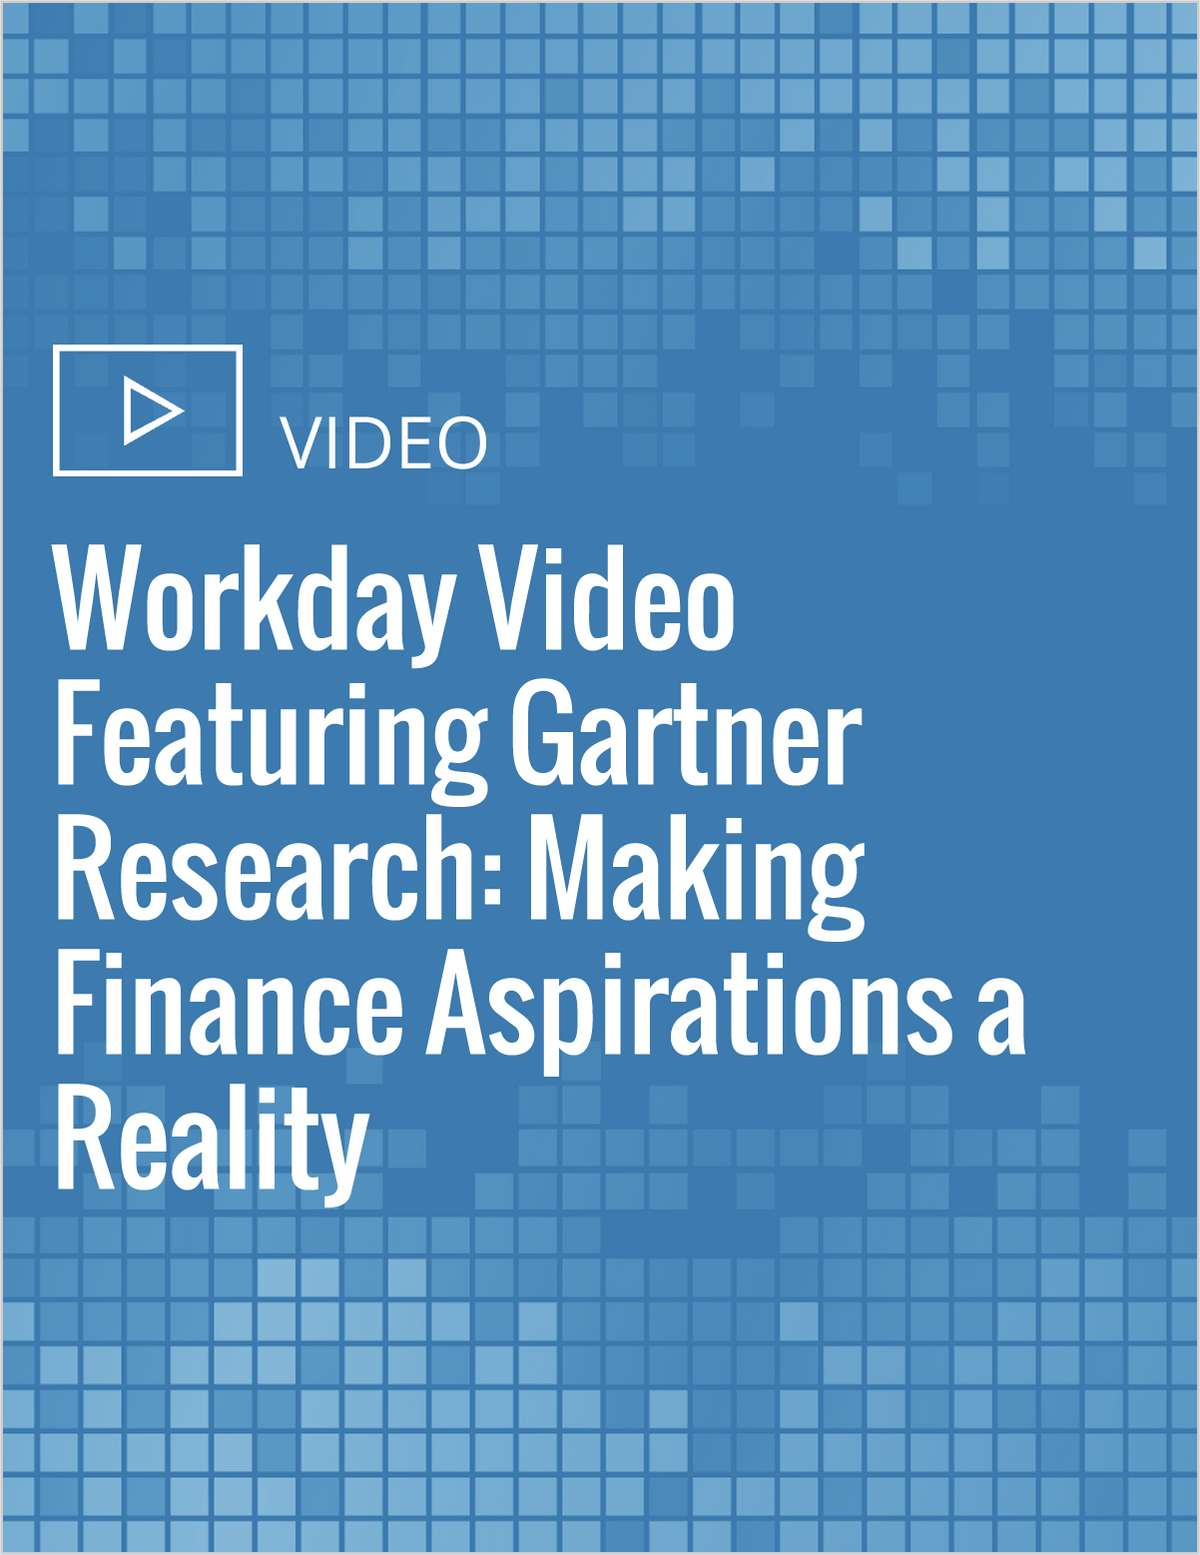 Workday Video Featuring Gartner Research: Making Finance Aspirations a Reality